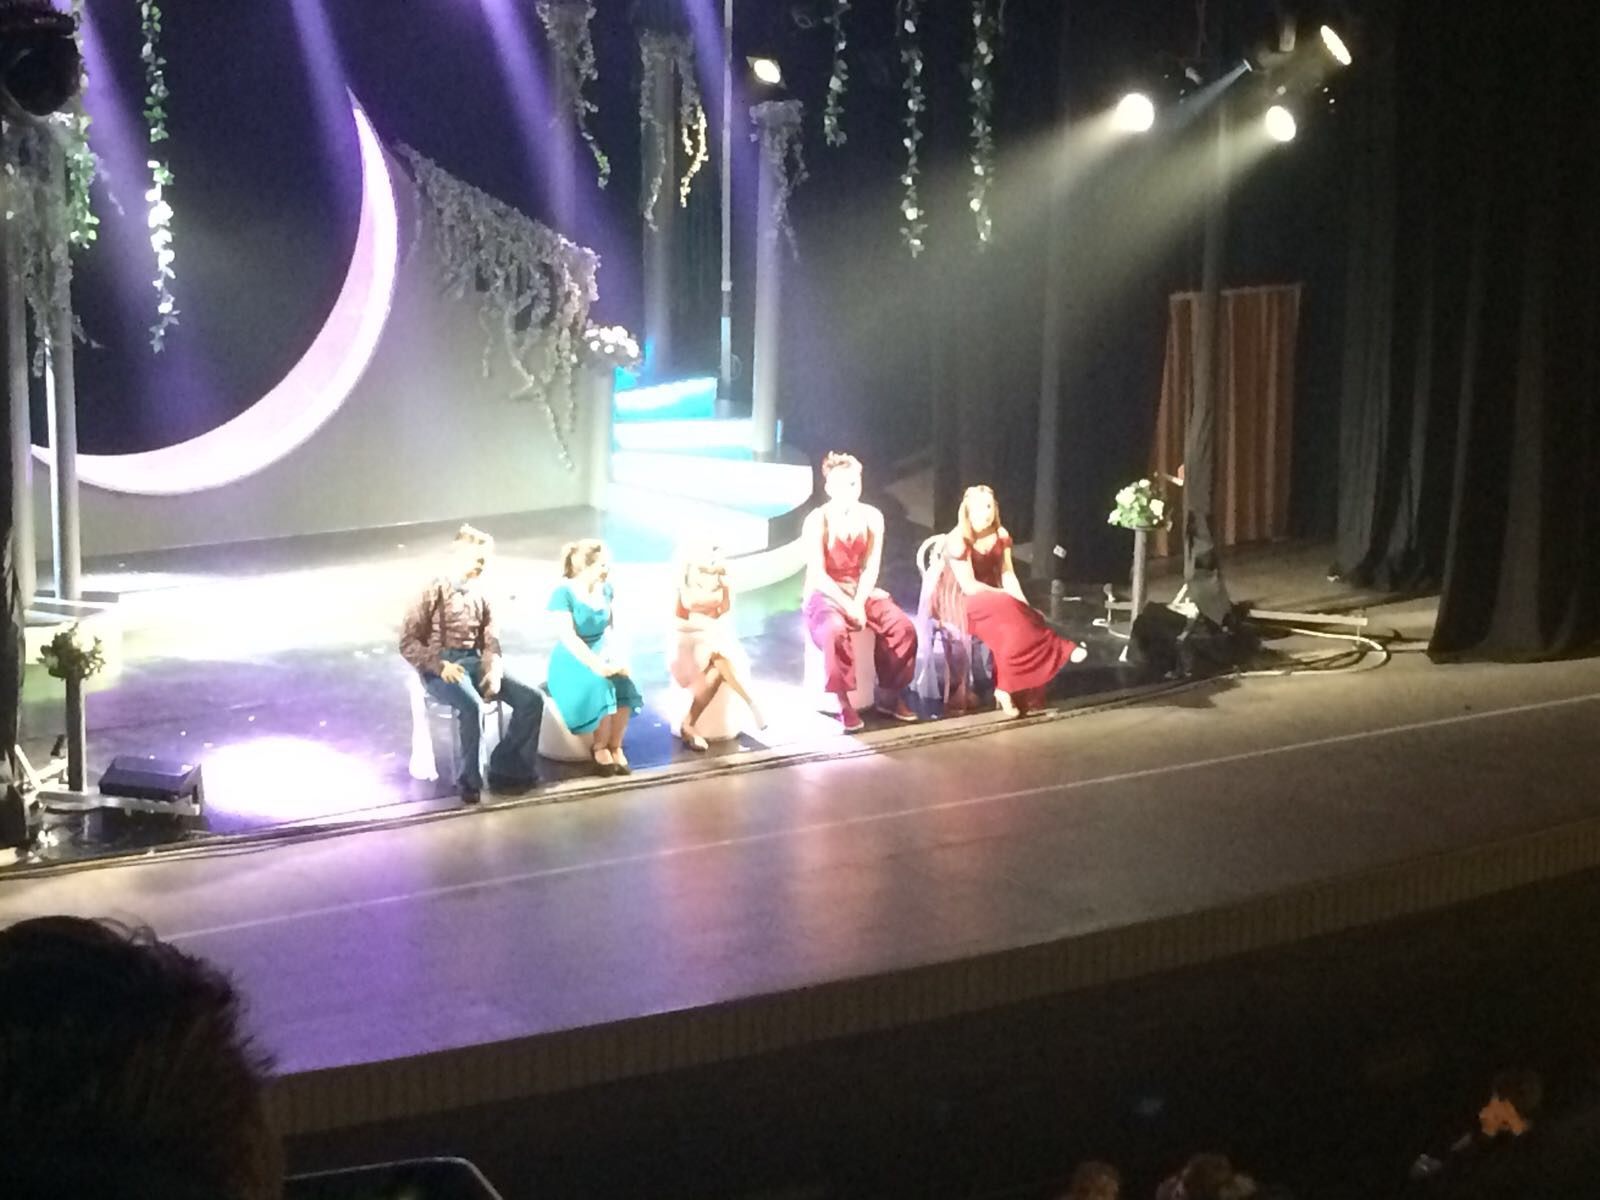 La I E II Liceo A Teatro Per A Midsummer Night's Dream